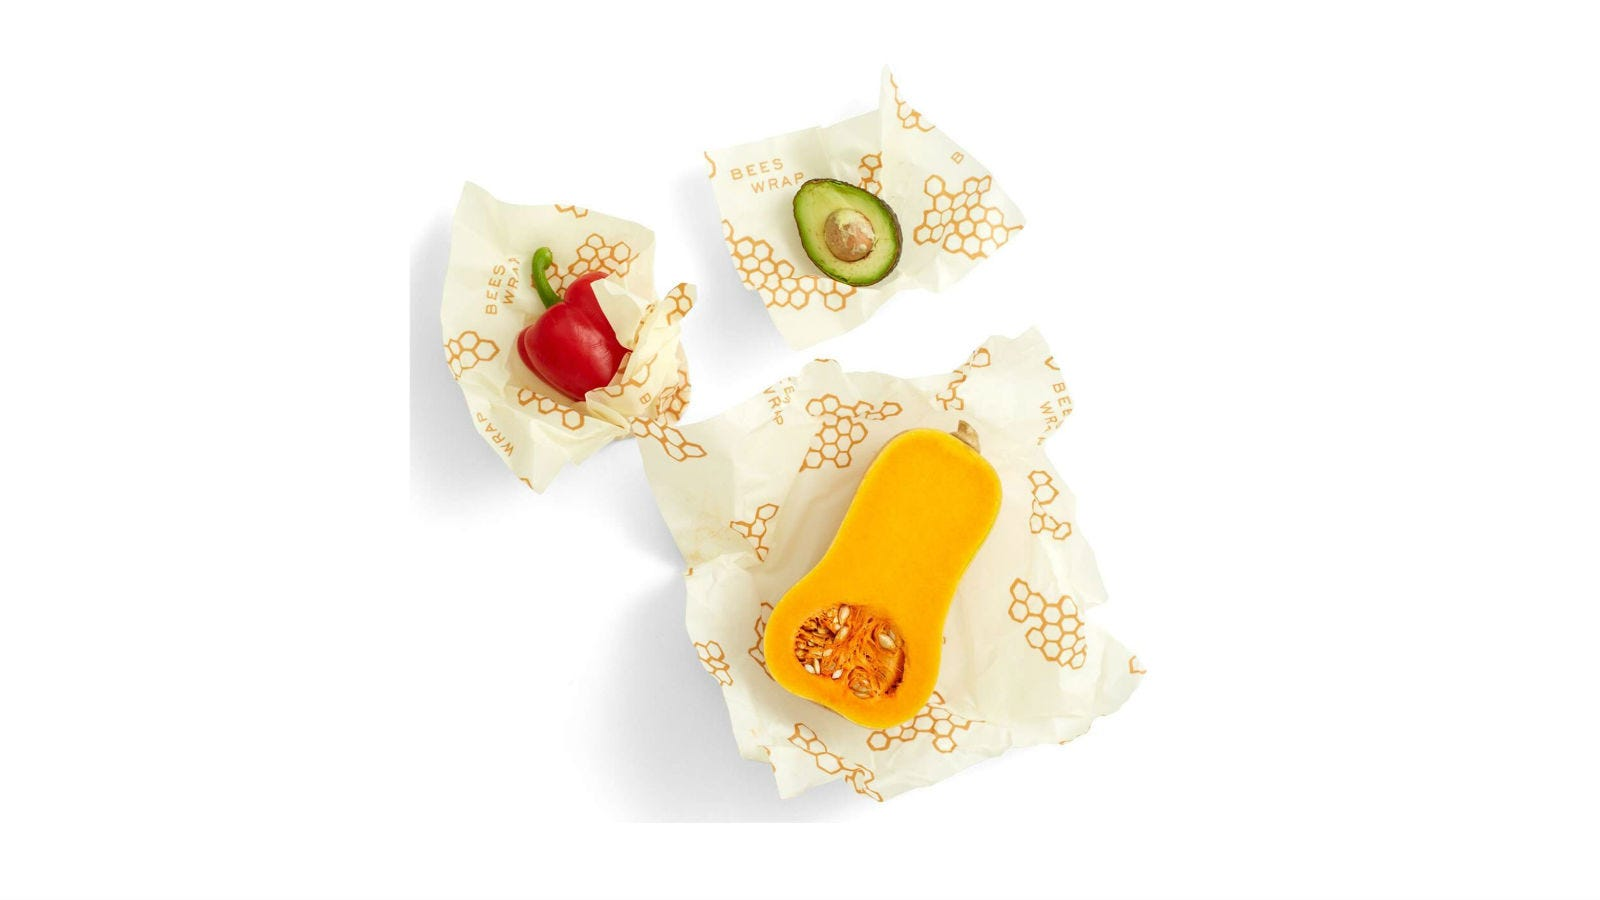 Three pieces of produce each sitting on top of a piece of Bee's Wrap.